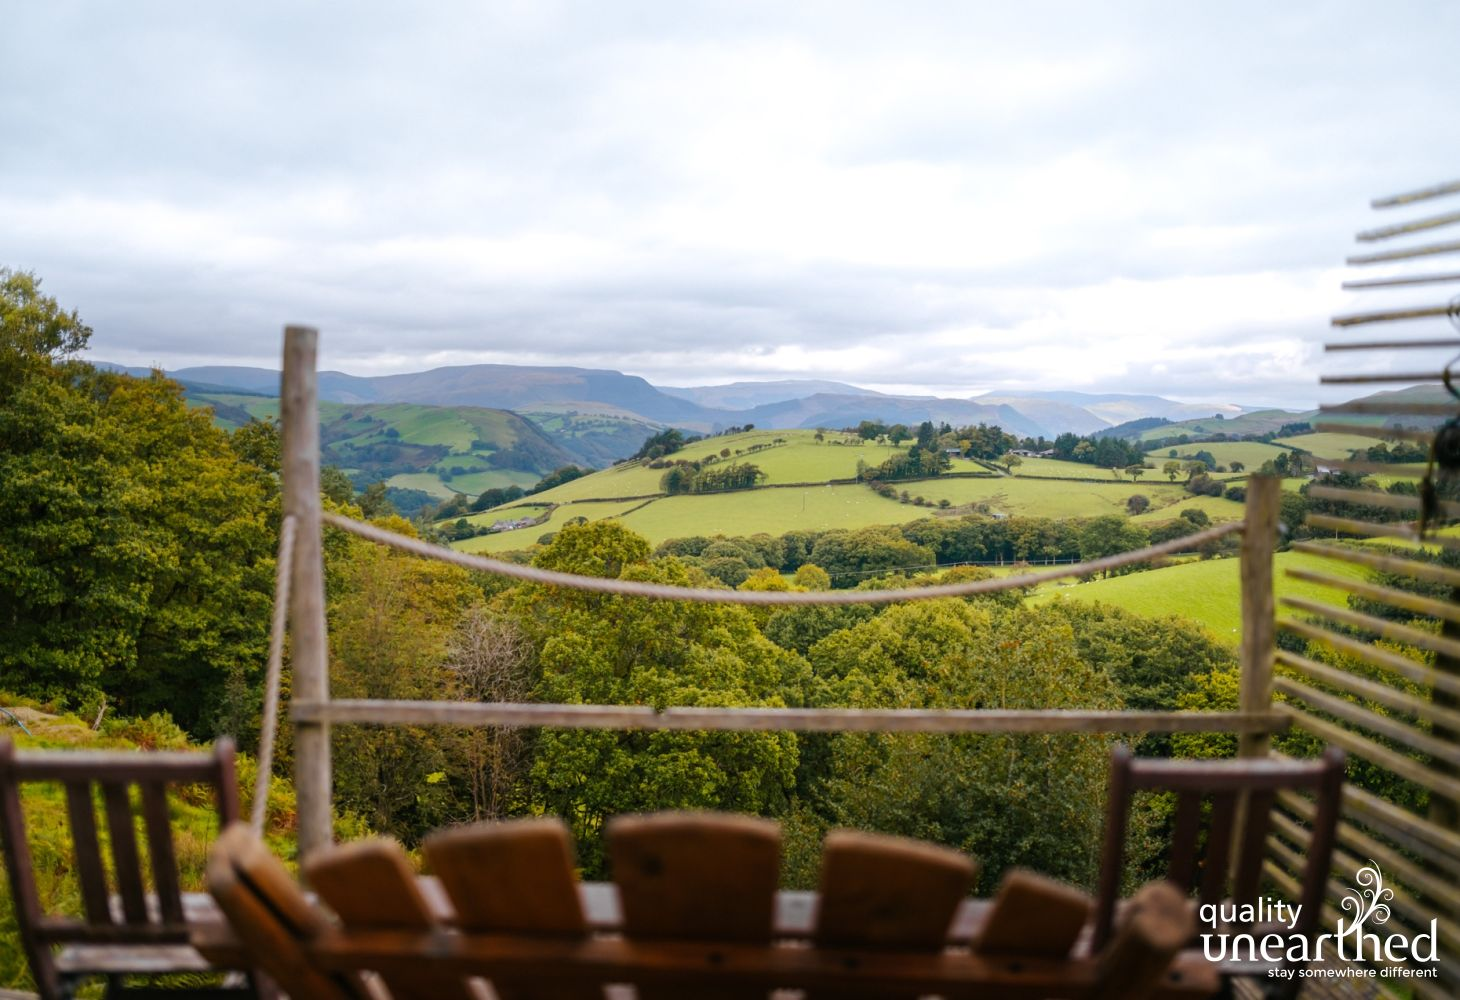 A wooden bench takes full advantage of the view from the treehouse terrace across rolling hills, the woods and the Cader Idris mountains